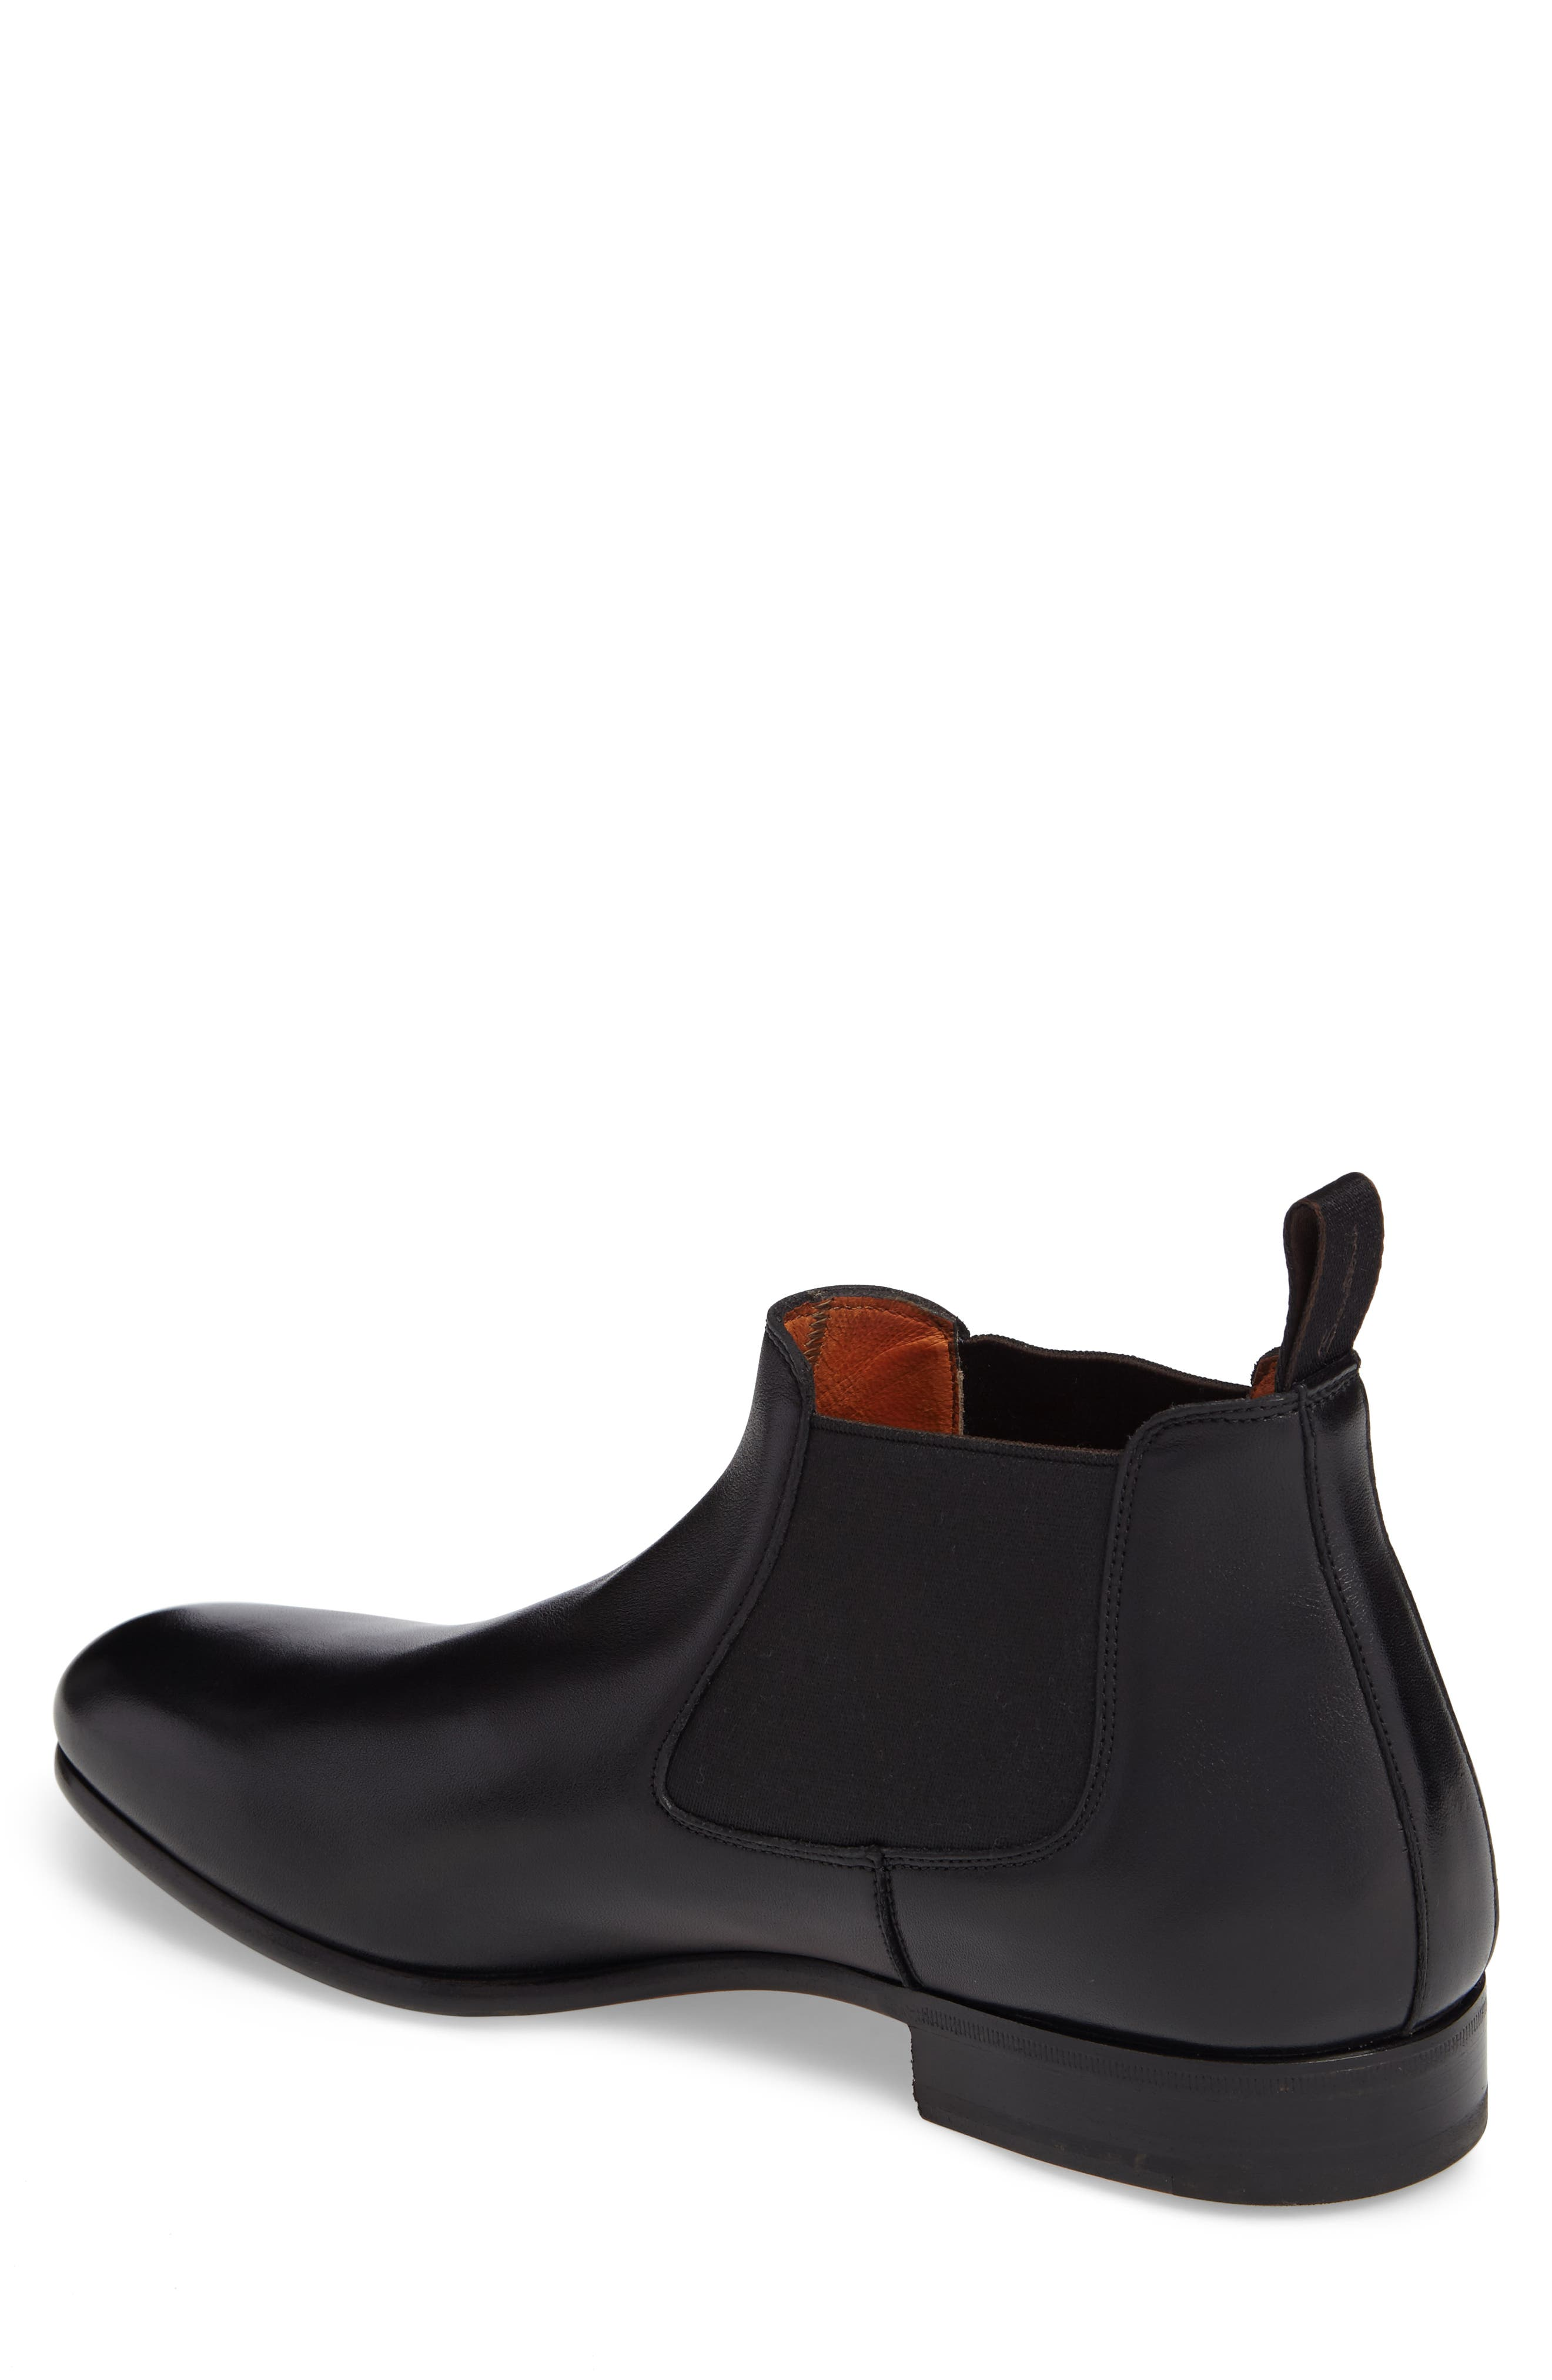 Gunther Chelsea Boot,                             Alternate thumbnail 3, color,